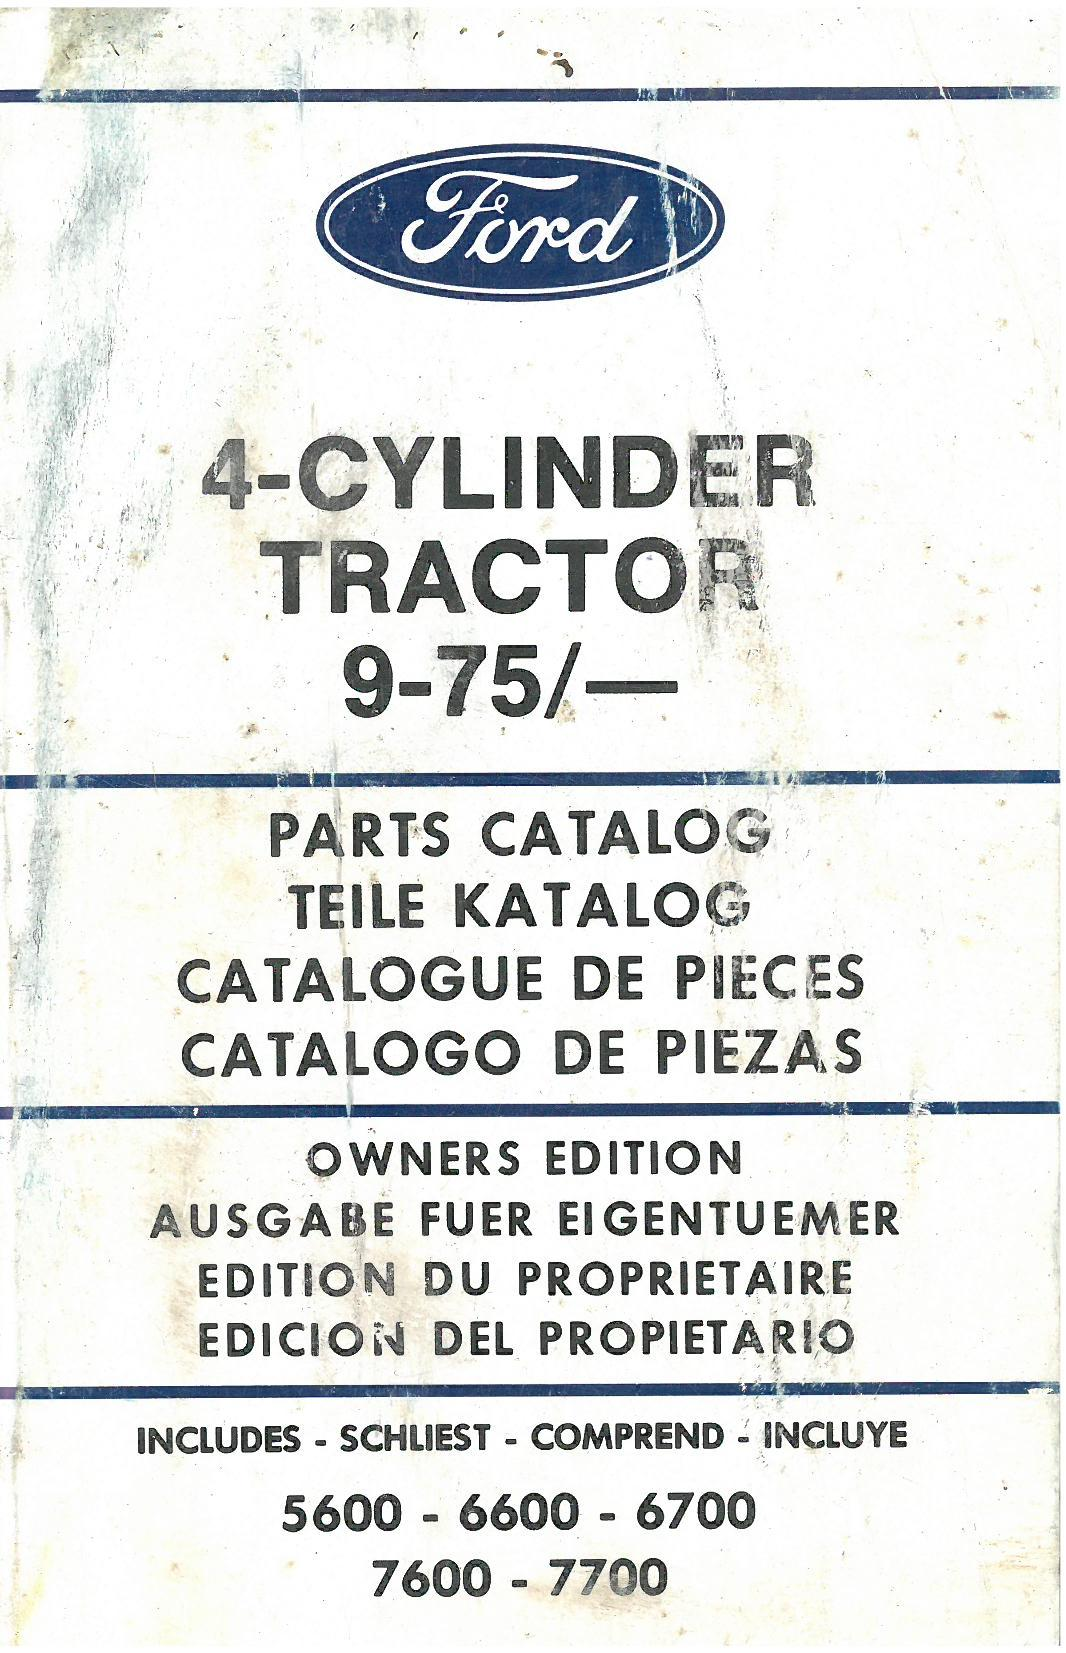 Ford Tractor 4 Cylinder 9-75